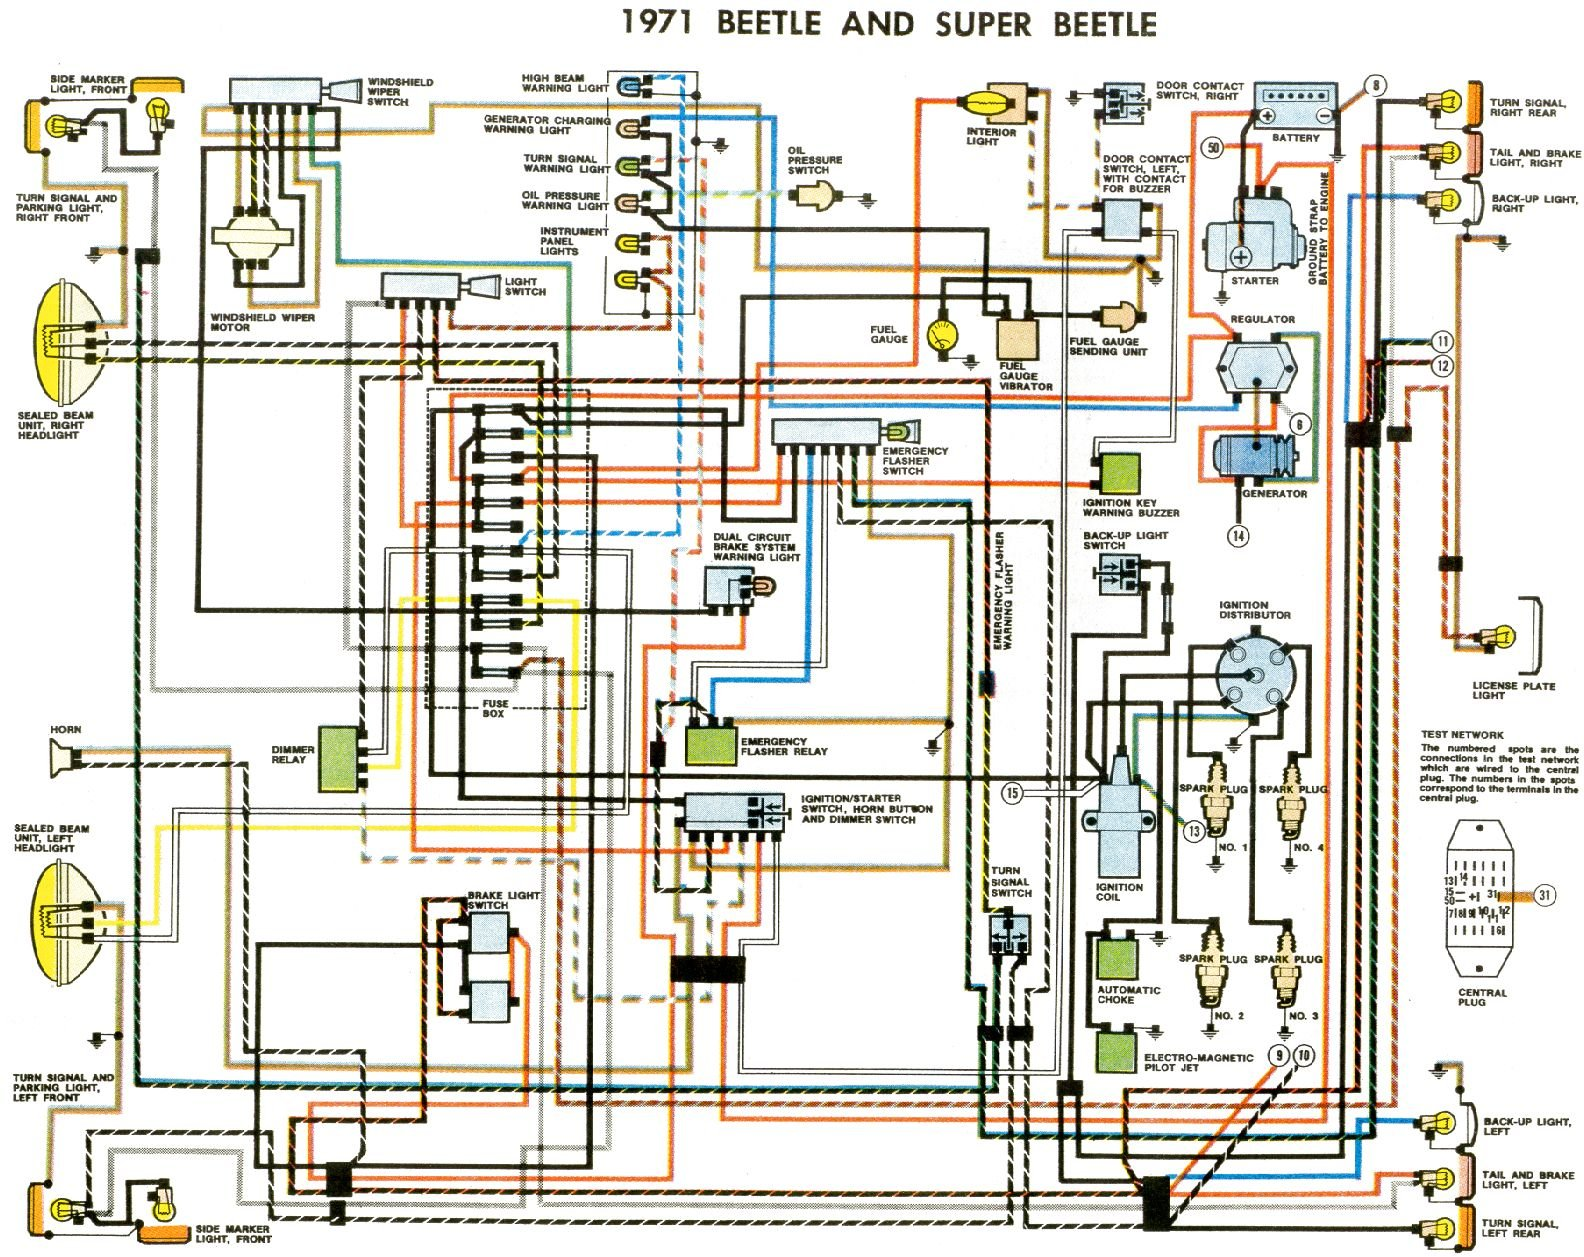 bug_71 1971 beetle wiring diagram (usa) thegoldenbug com wiring diagram 69 vw beetle at suagrazia.org